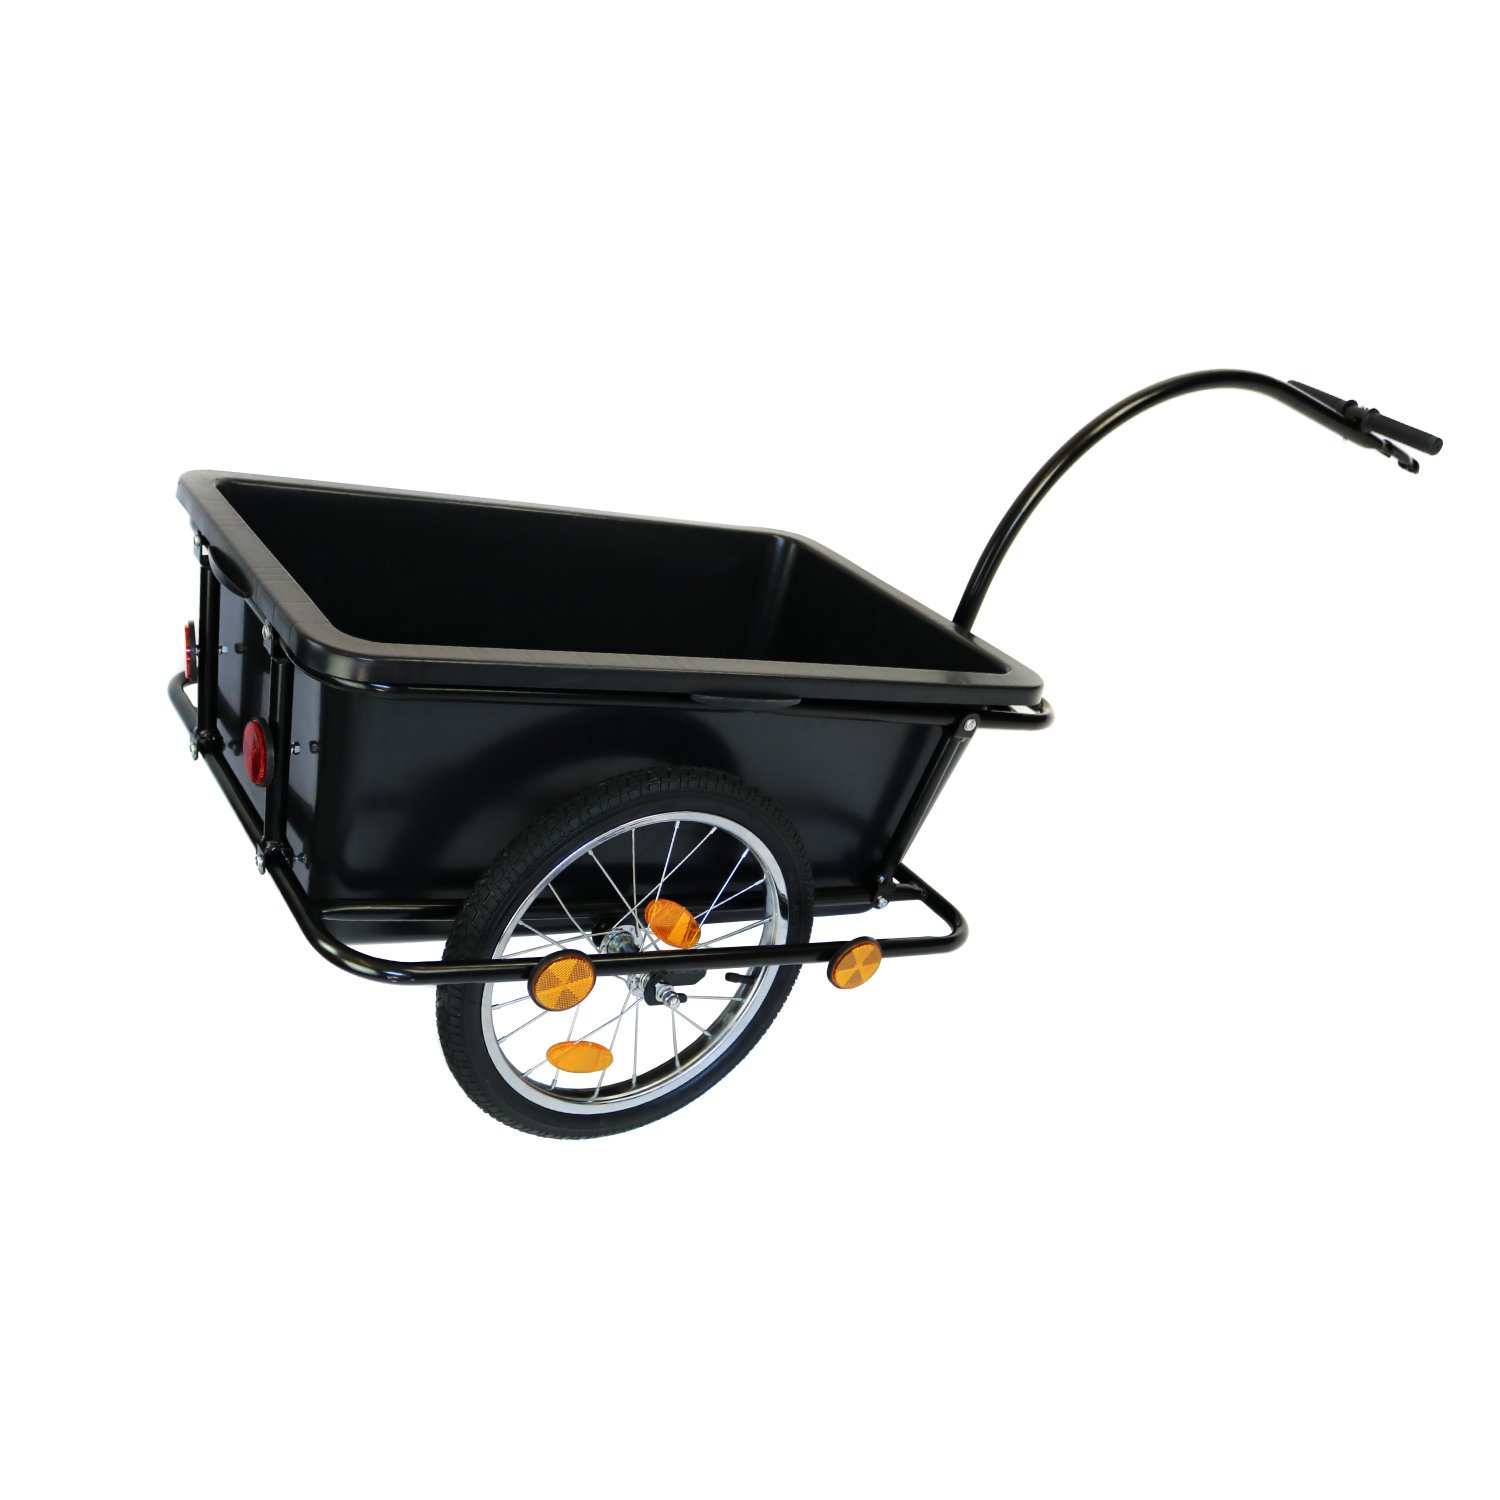 Bike Trailer Trolley with Coupling & Pneumatic Tyre 90L Cargo